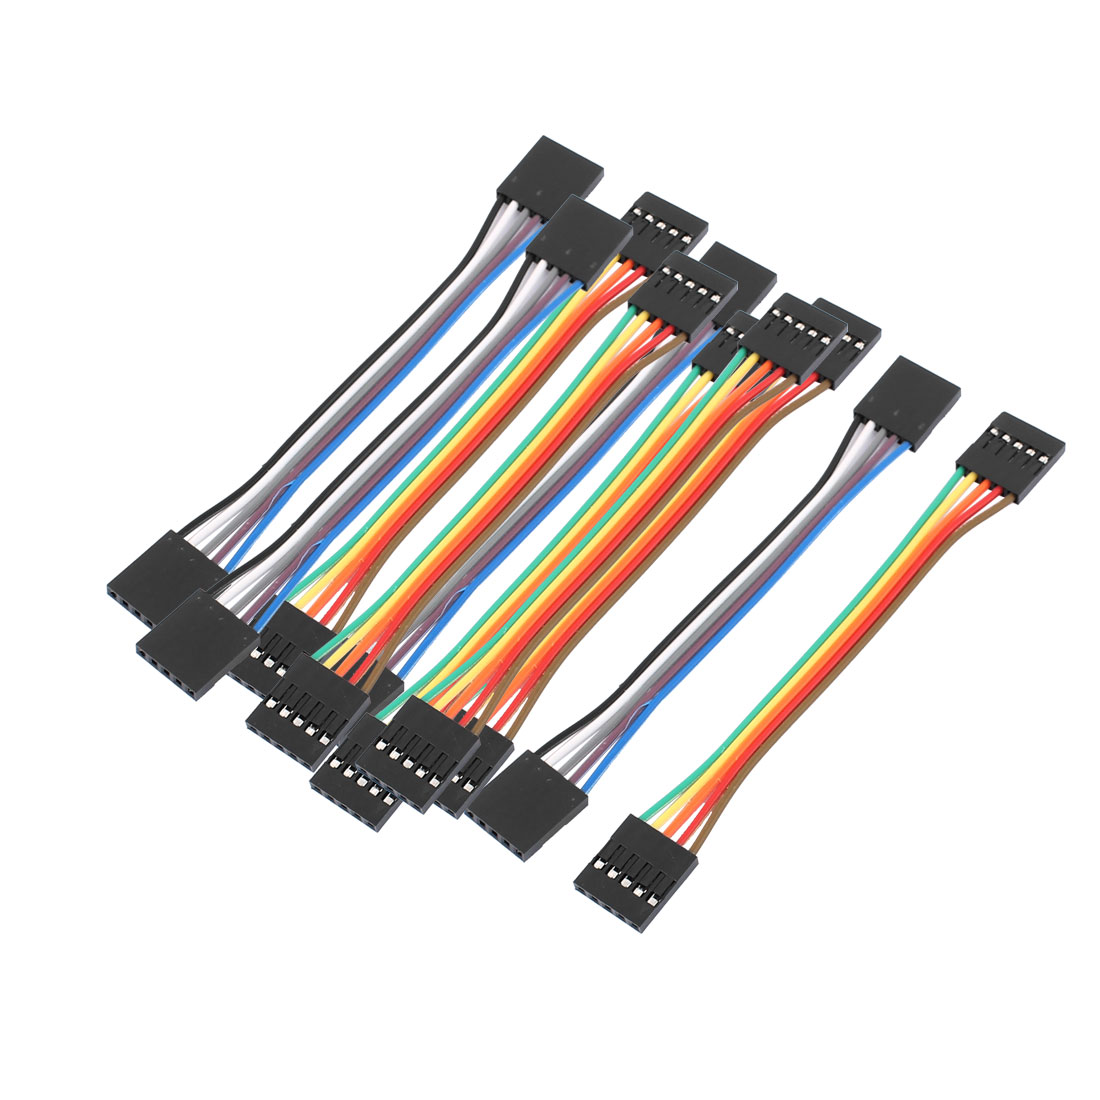 10PCS 2.54mm Pitch 5P Female Breadboard Double Head Jumper Wire Cable 10cm Long